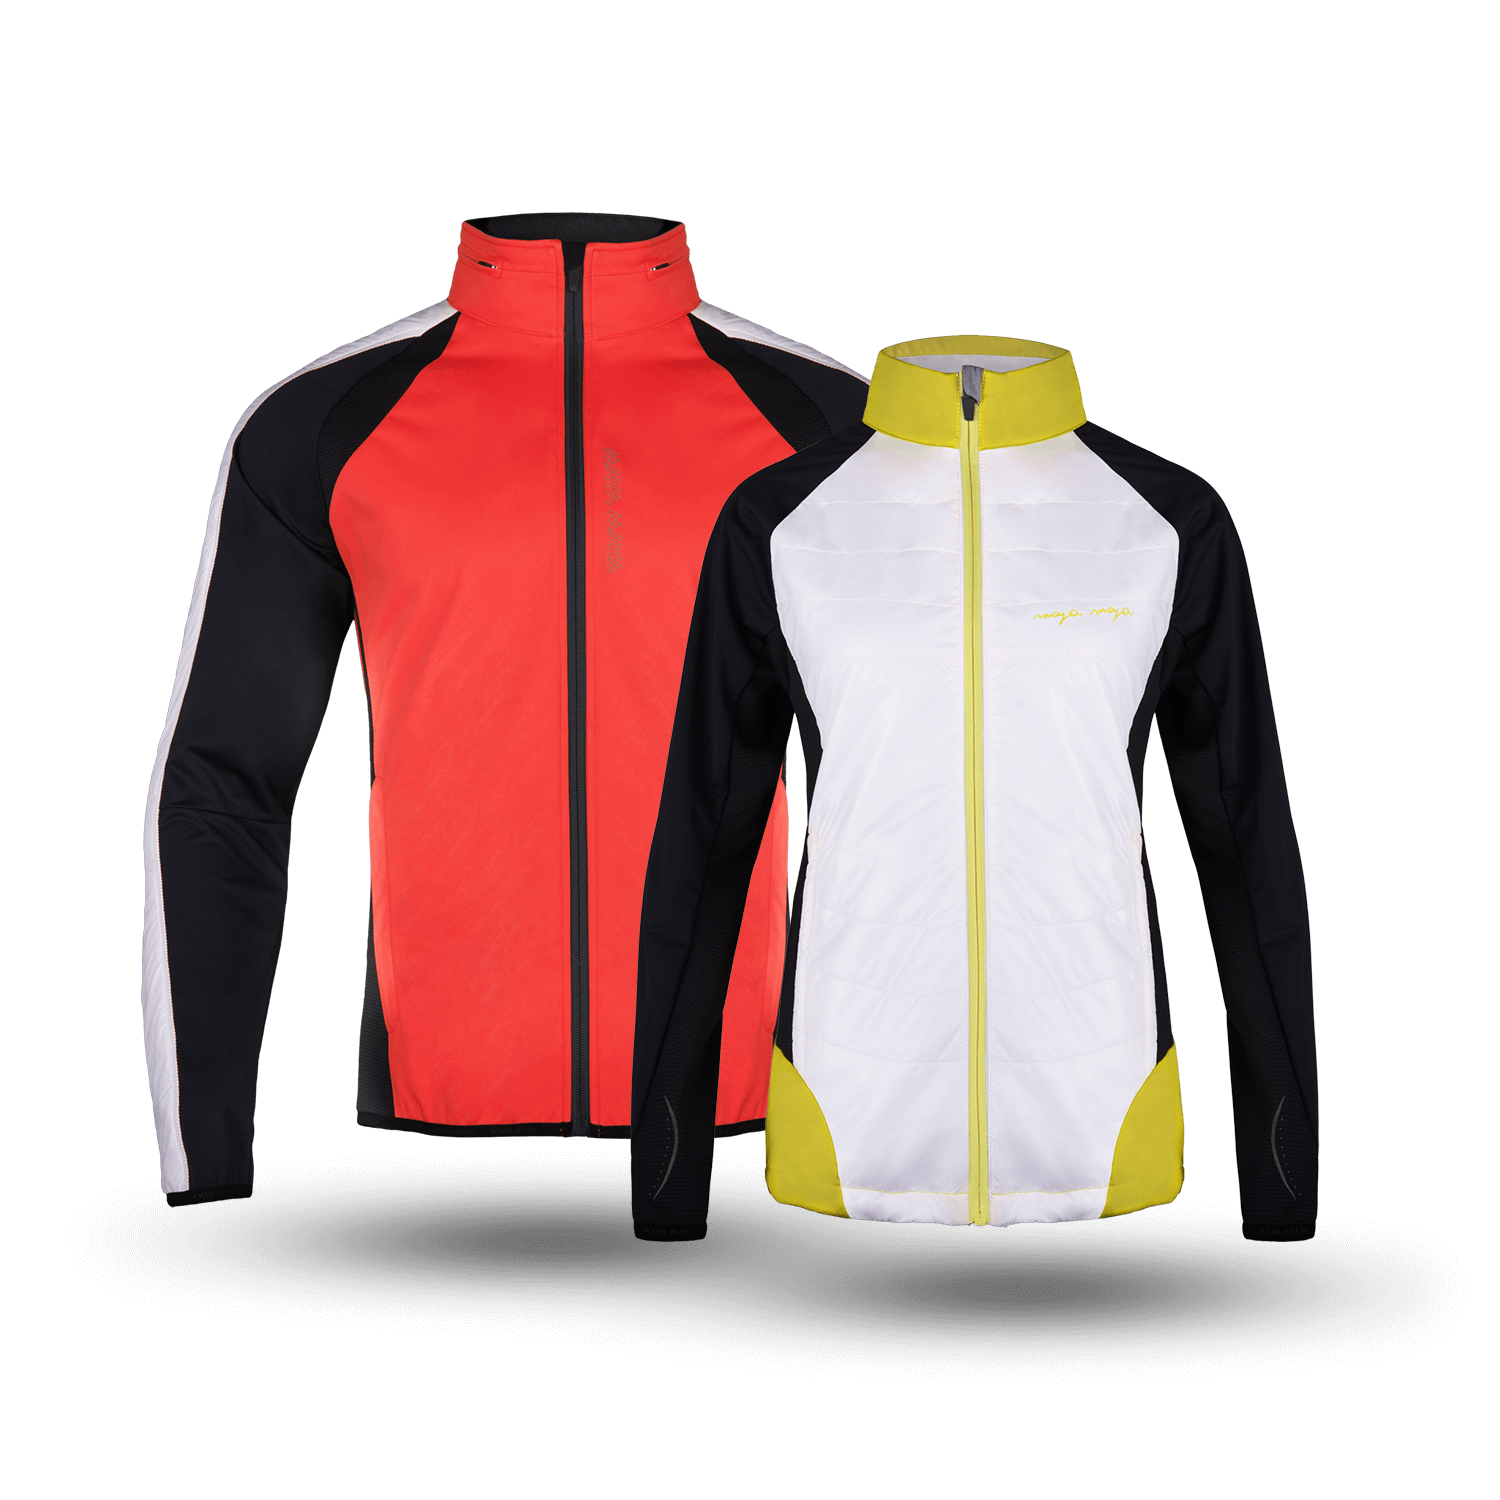 Men and woman breathable jackets for cross-country skiing by MAYA MAYA